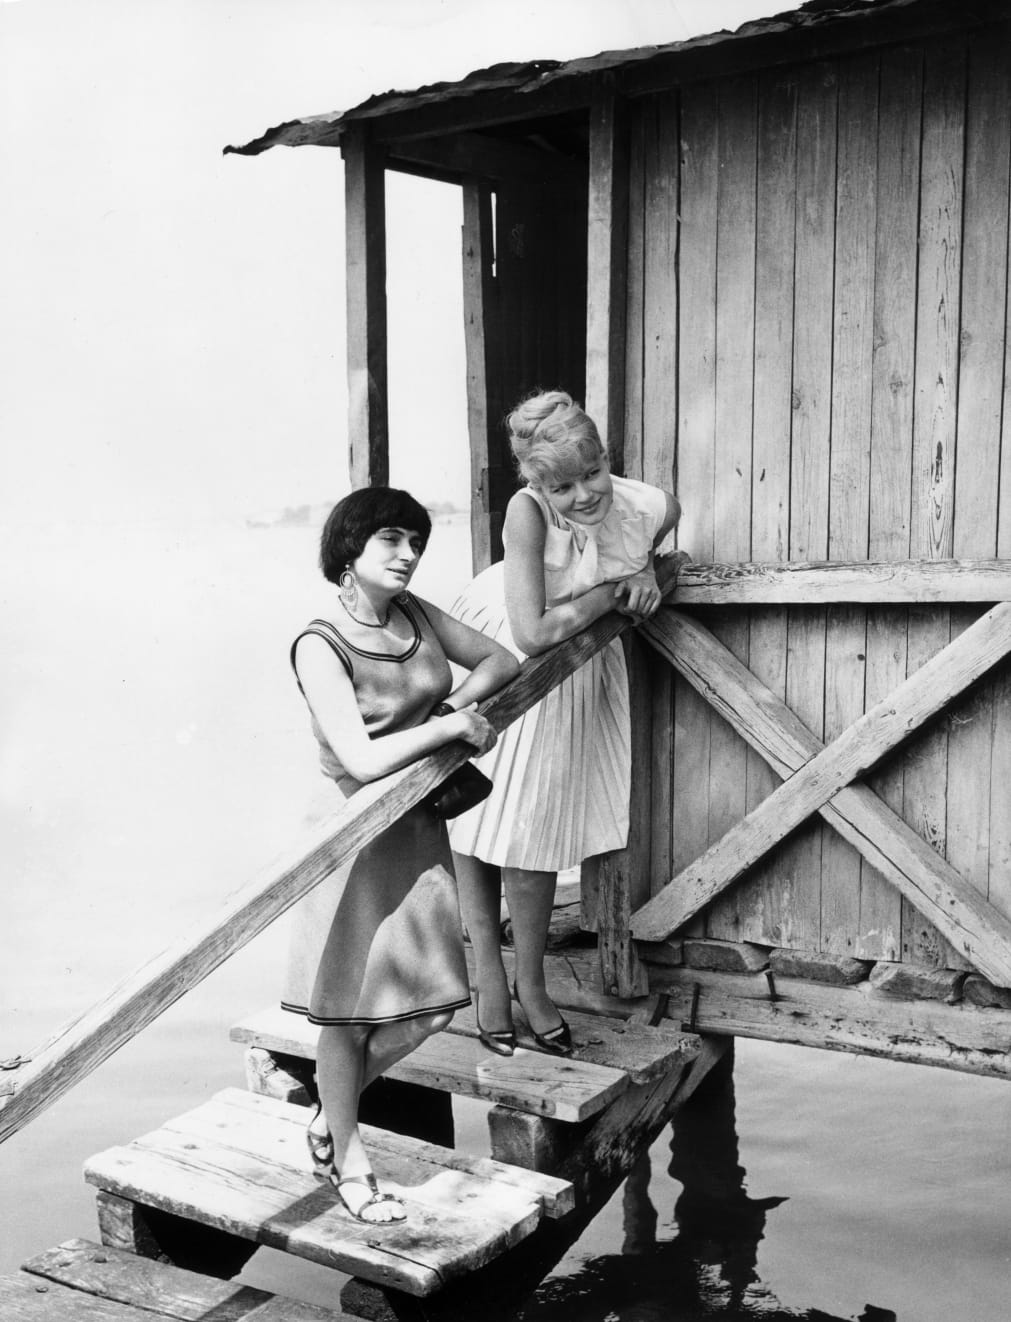 Agnes Varda (left) at the Venice Film Festival in 1962 with Corinne Marchand, star of